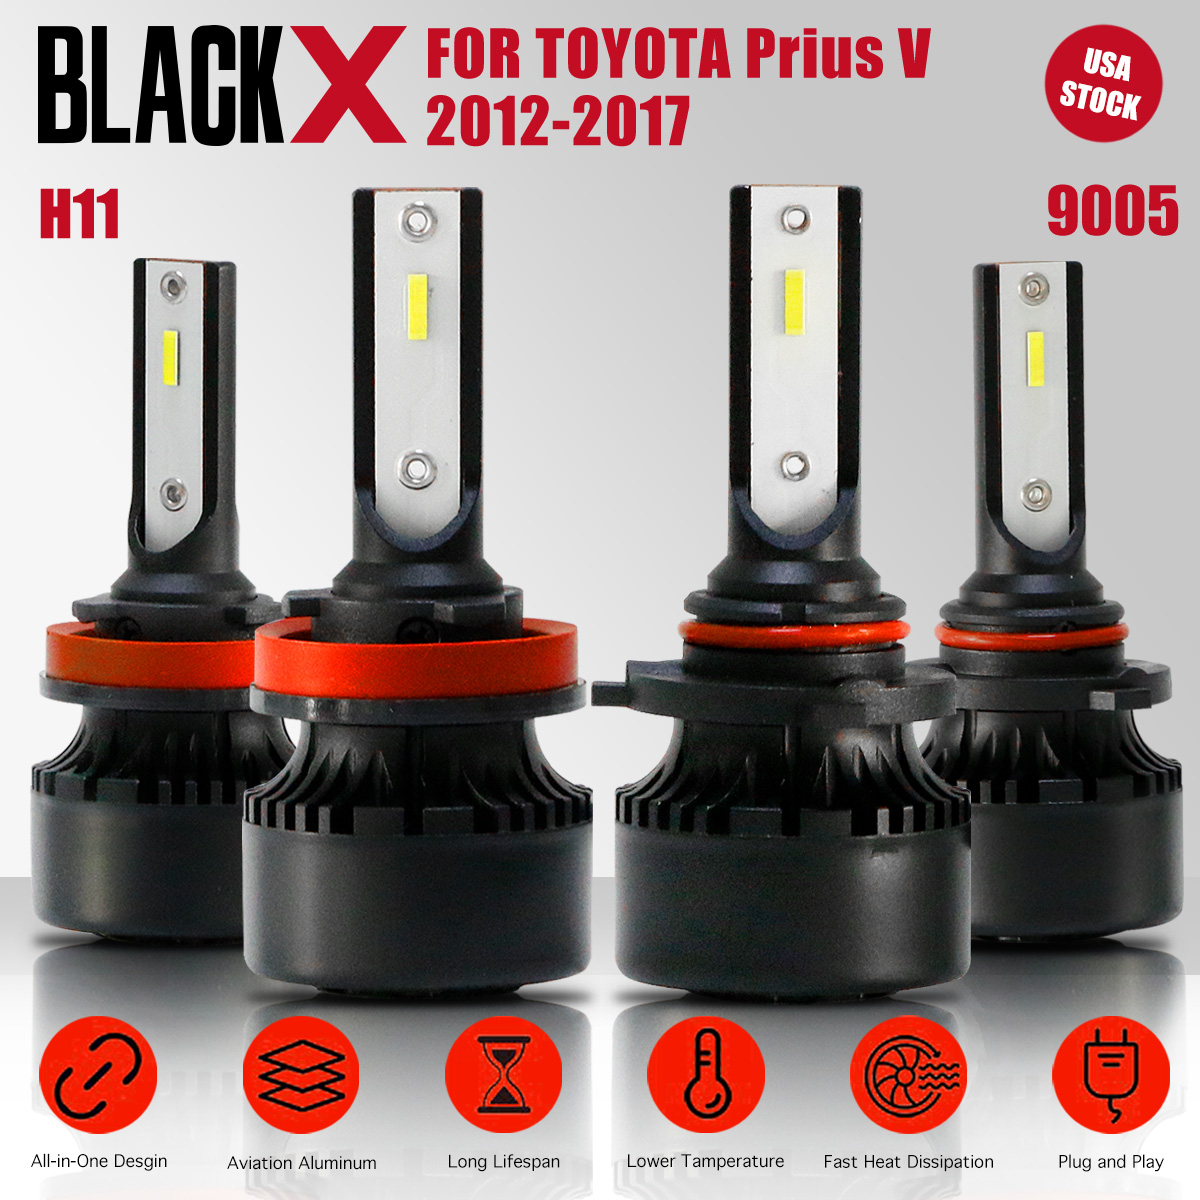 Details about H11+9005 High/Low Beam Suit LED Headlight Bulb Kits For  Toyota Prius V 2012-2017